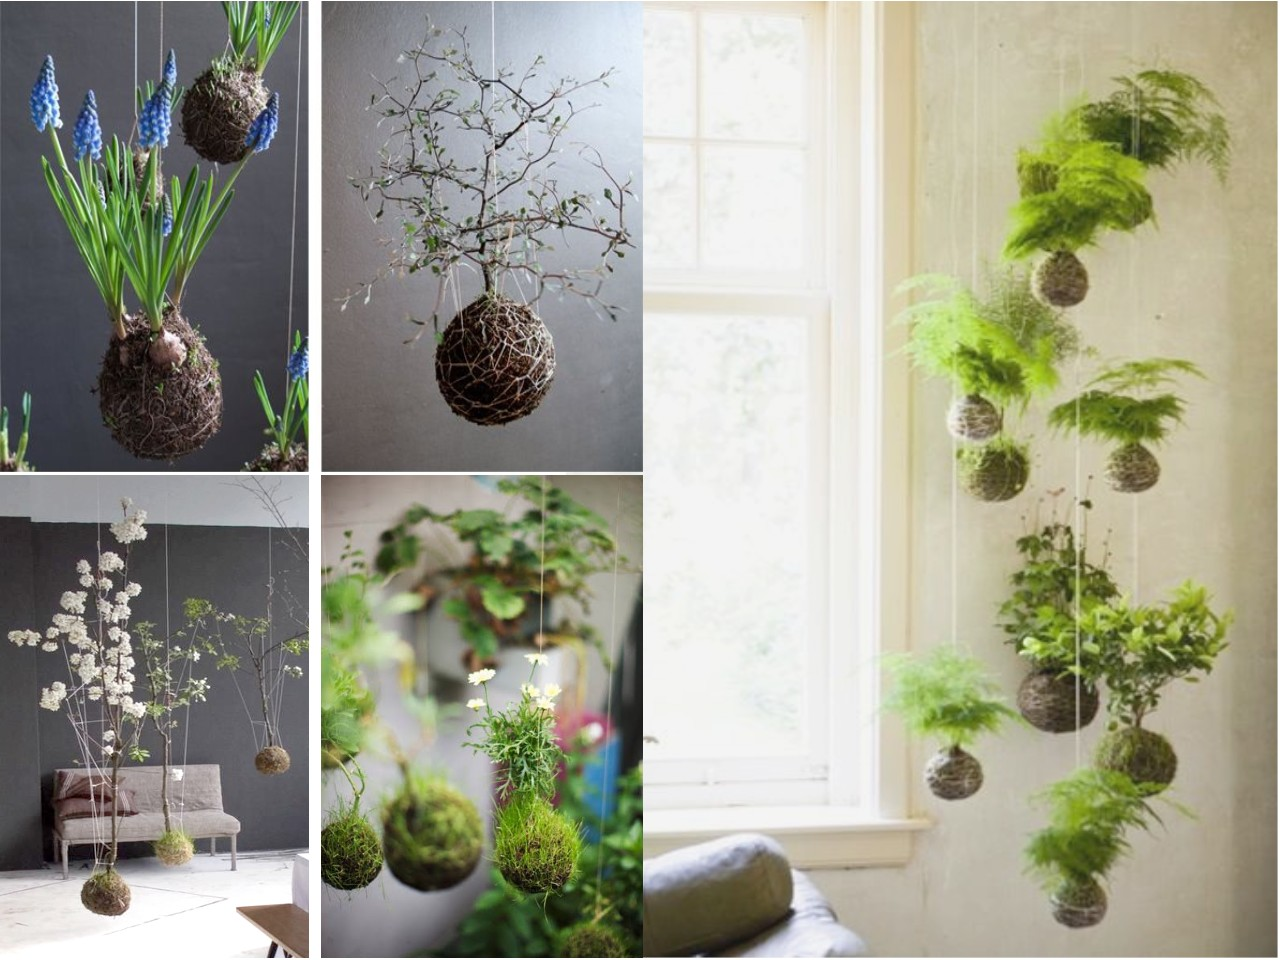 10 ideas de decoraci n con plantas colgantes for Decoracion con plantas de interior para oficinas